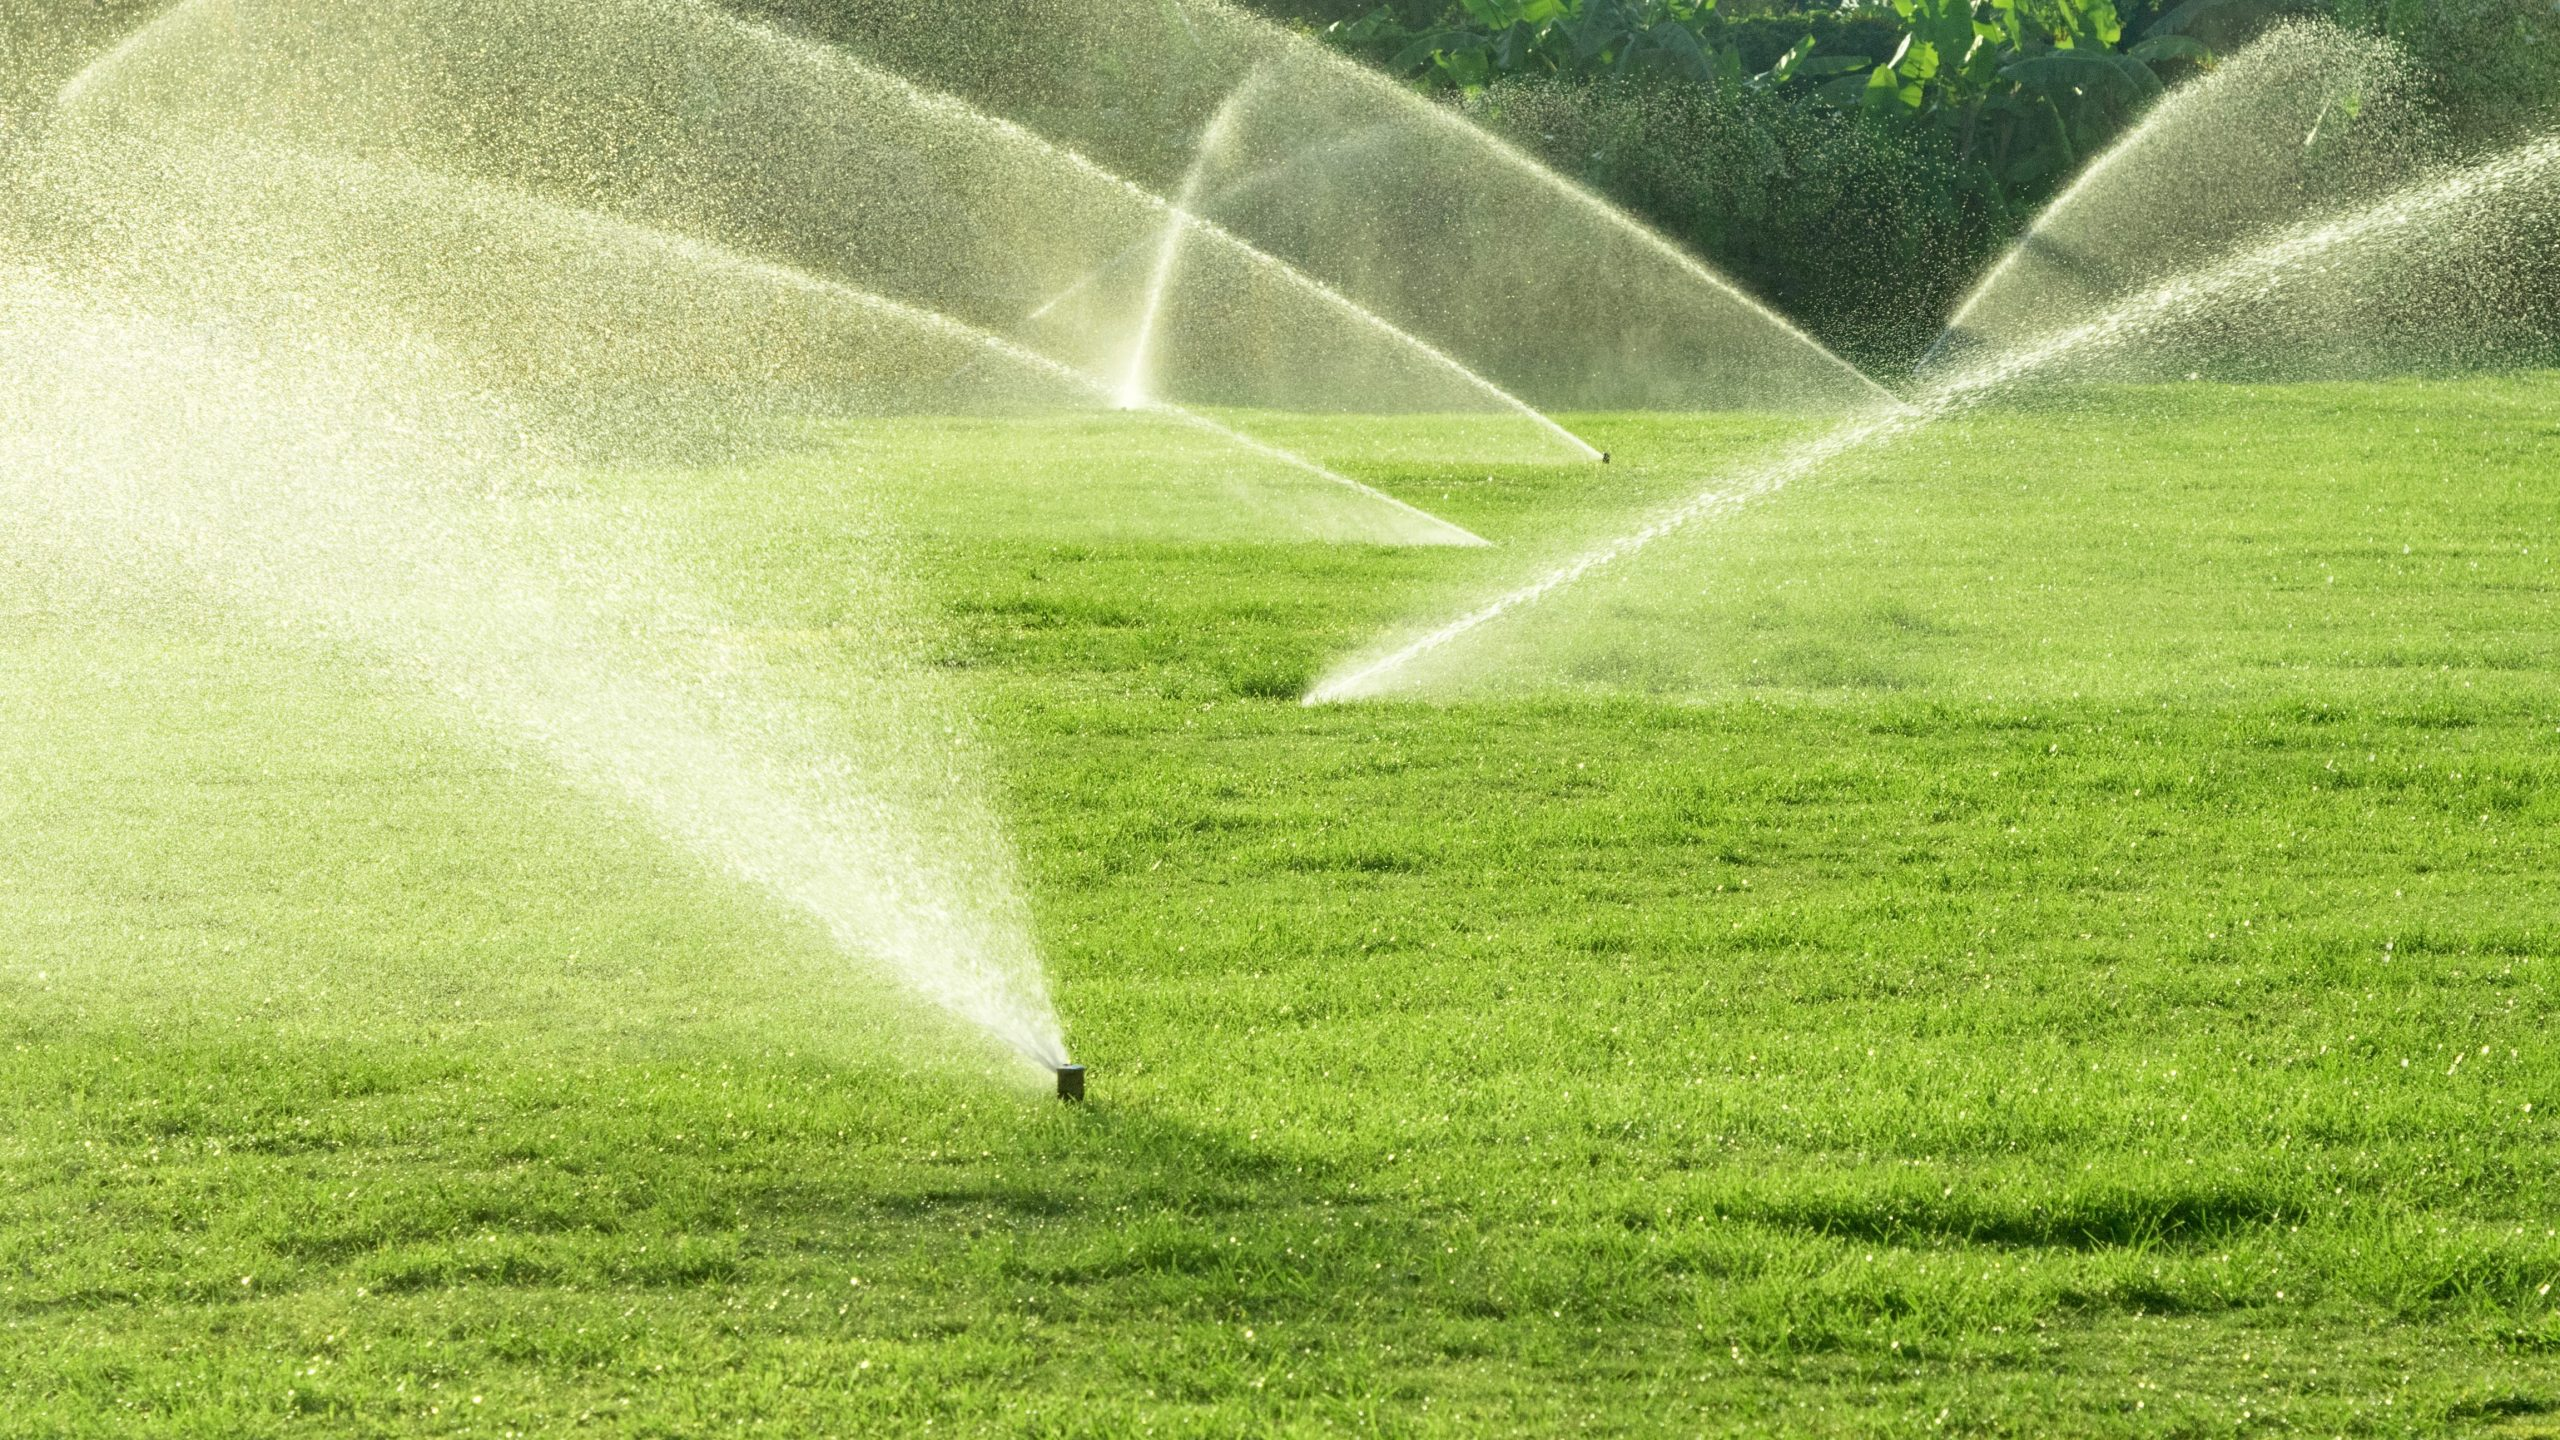 Sprinkler irrigation system watering the lawn.